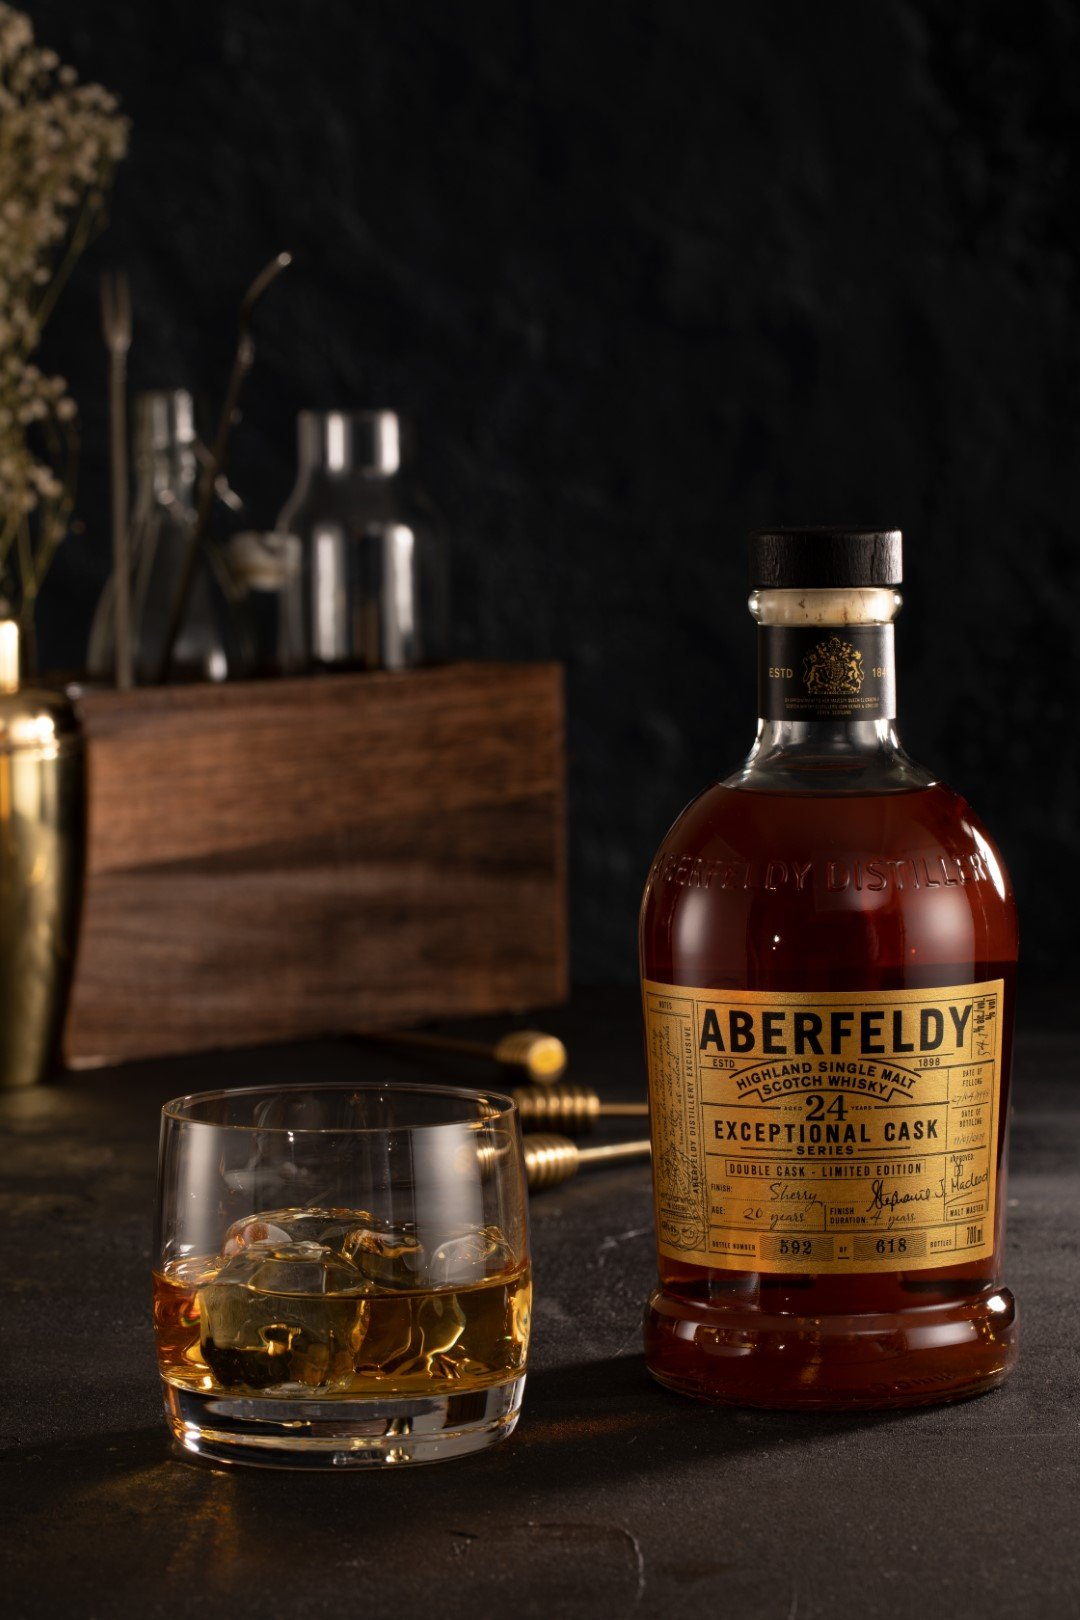 Aberfeldy Exceptional Cask Series 24 Years Old